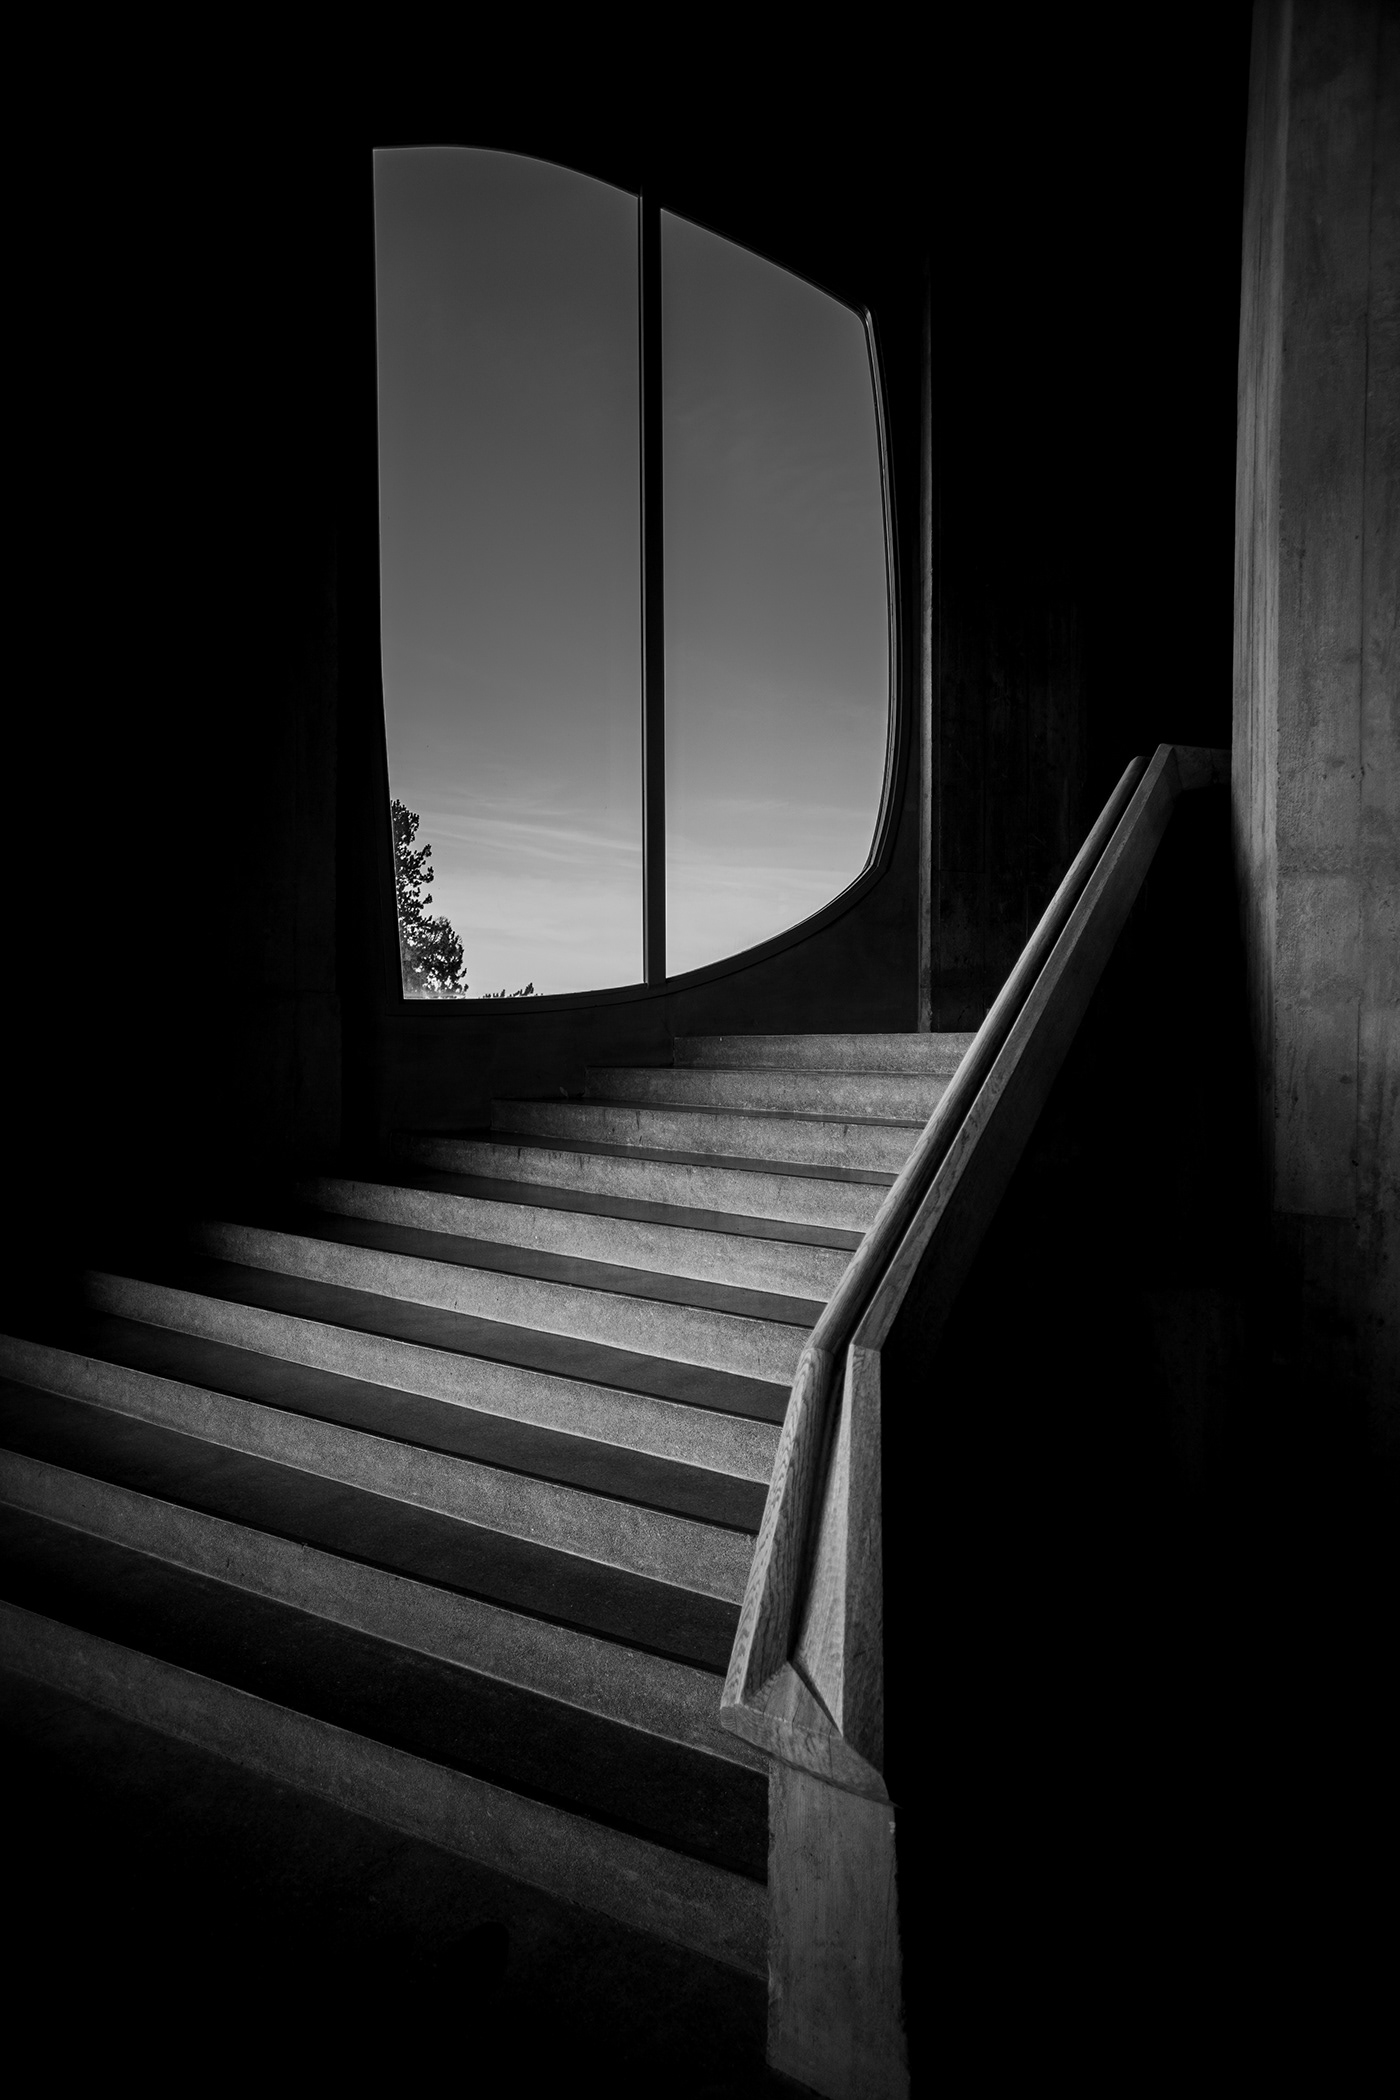 Image may contain: black and white, stairs and window